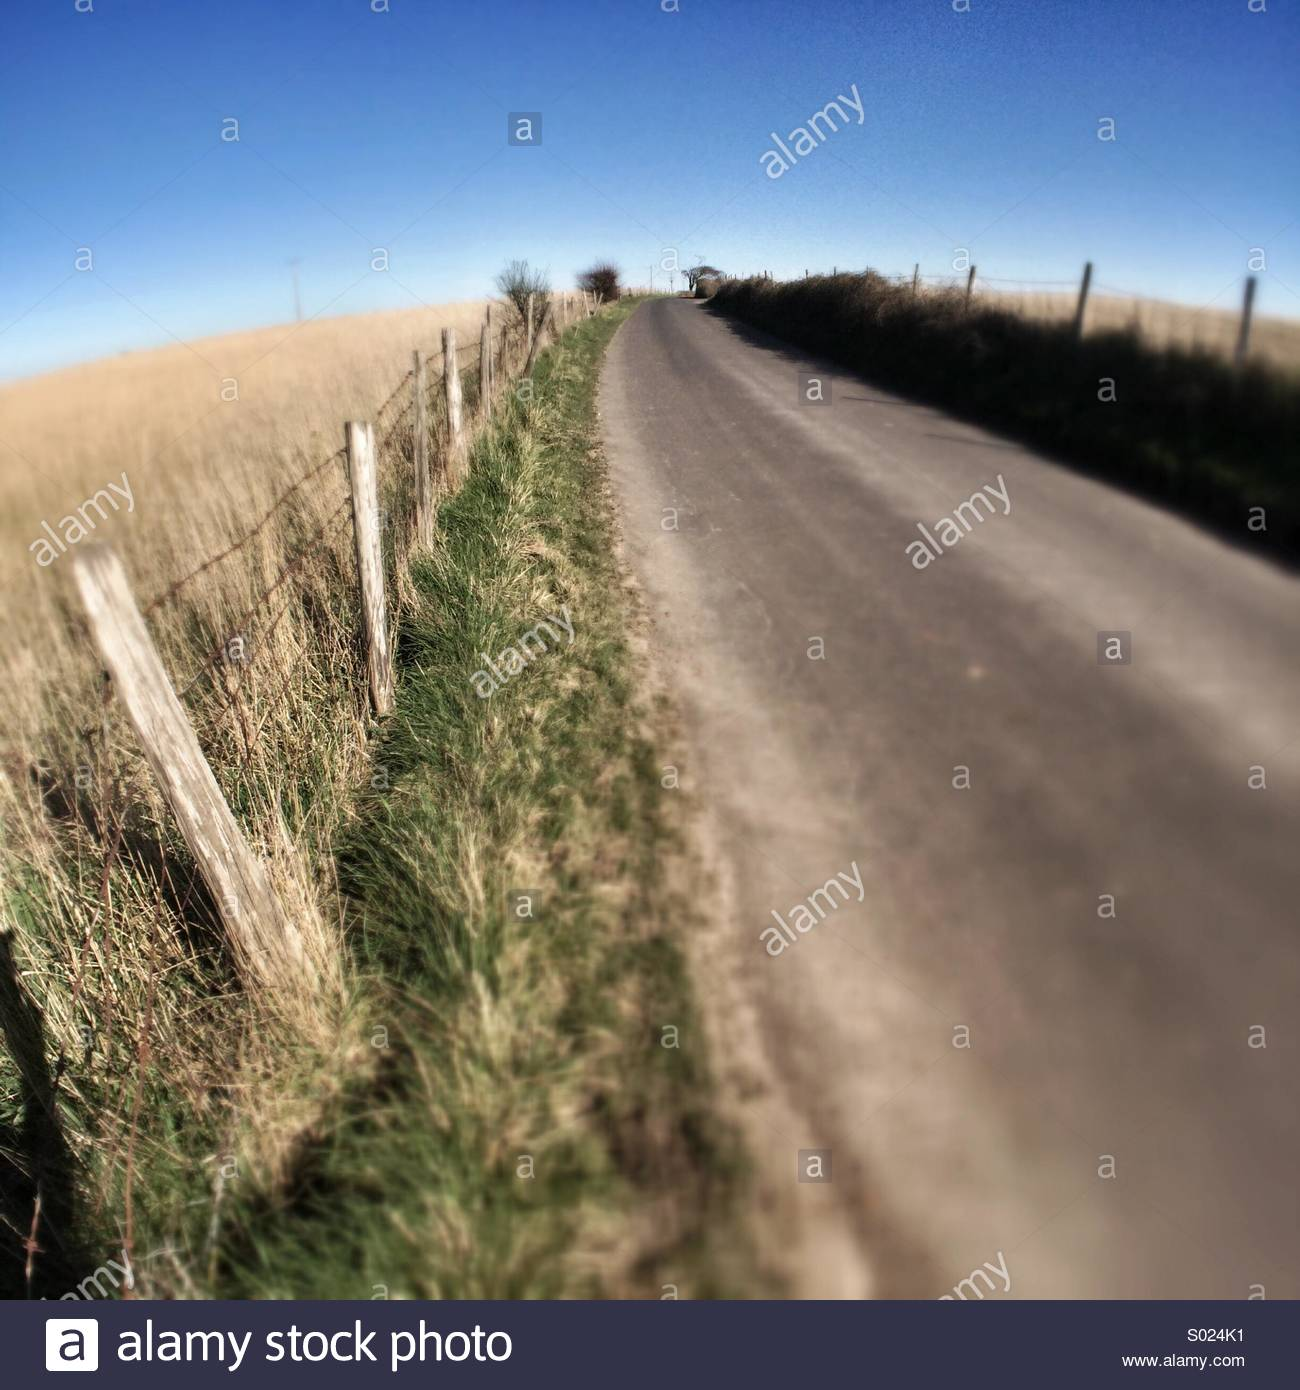 Country Lane, Fence, Road, Field, Rural - Stock Image